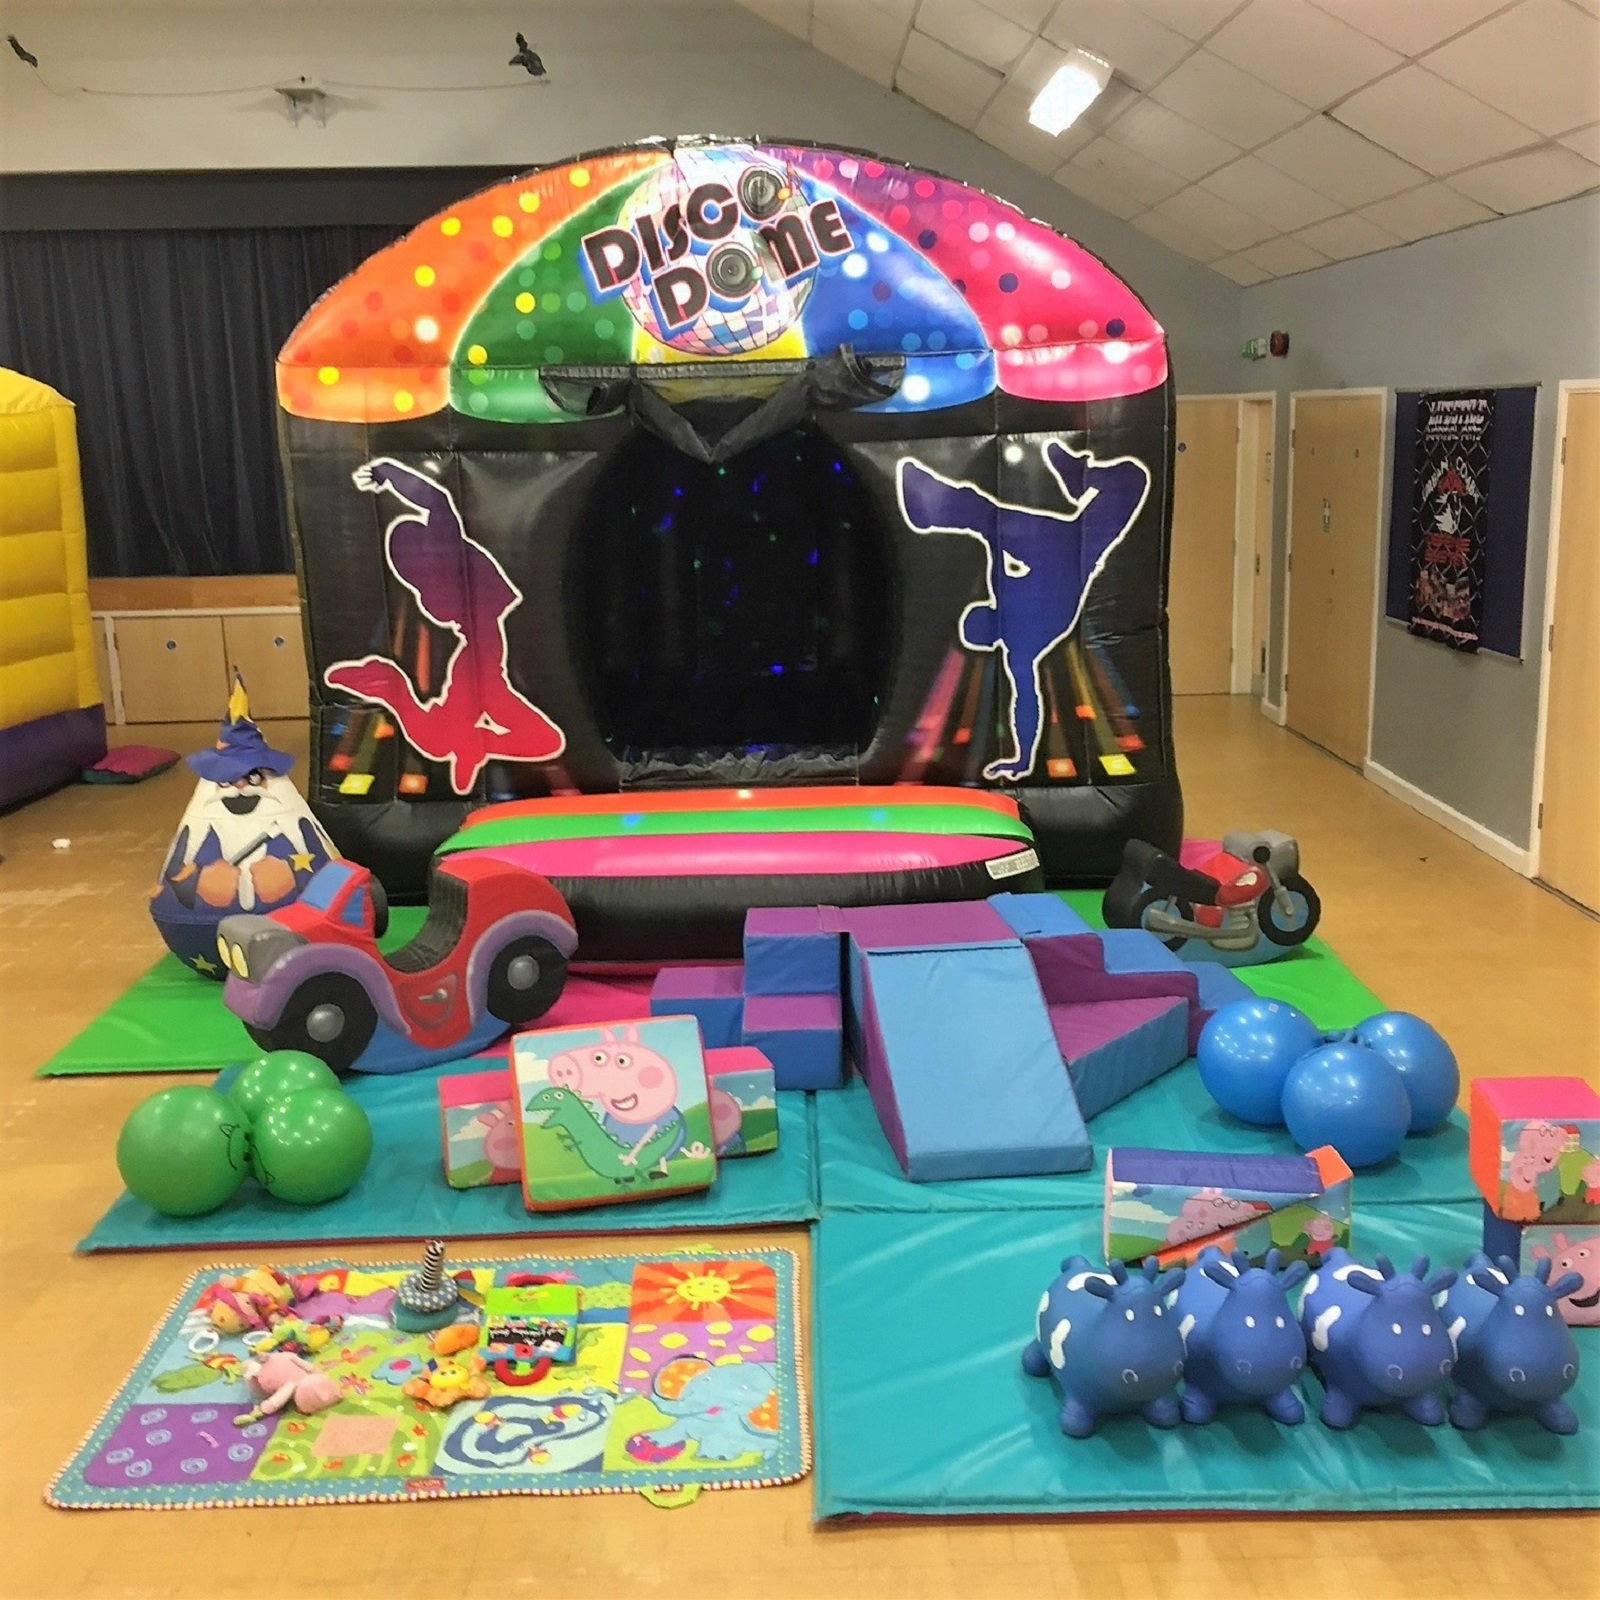 Leeds Castle Christmas Party: Bouncy Castle Hire In Leeds